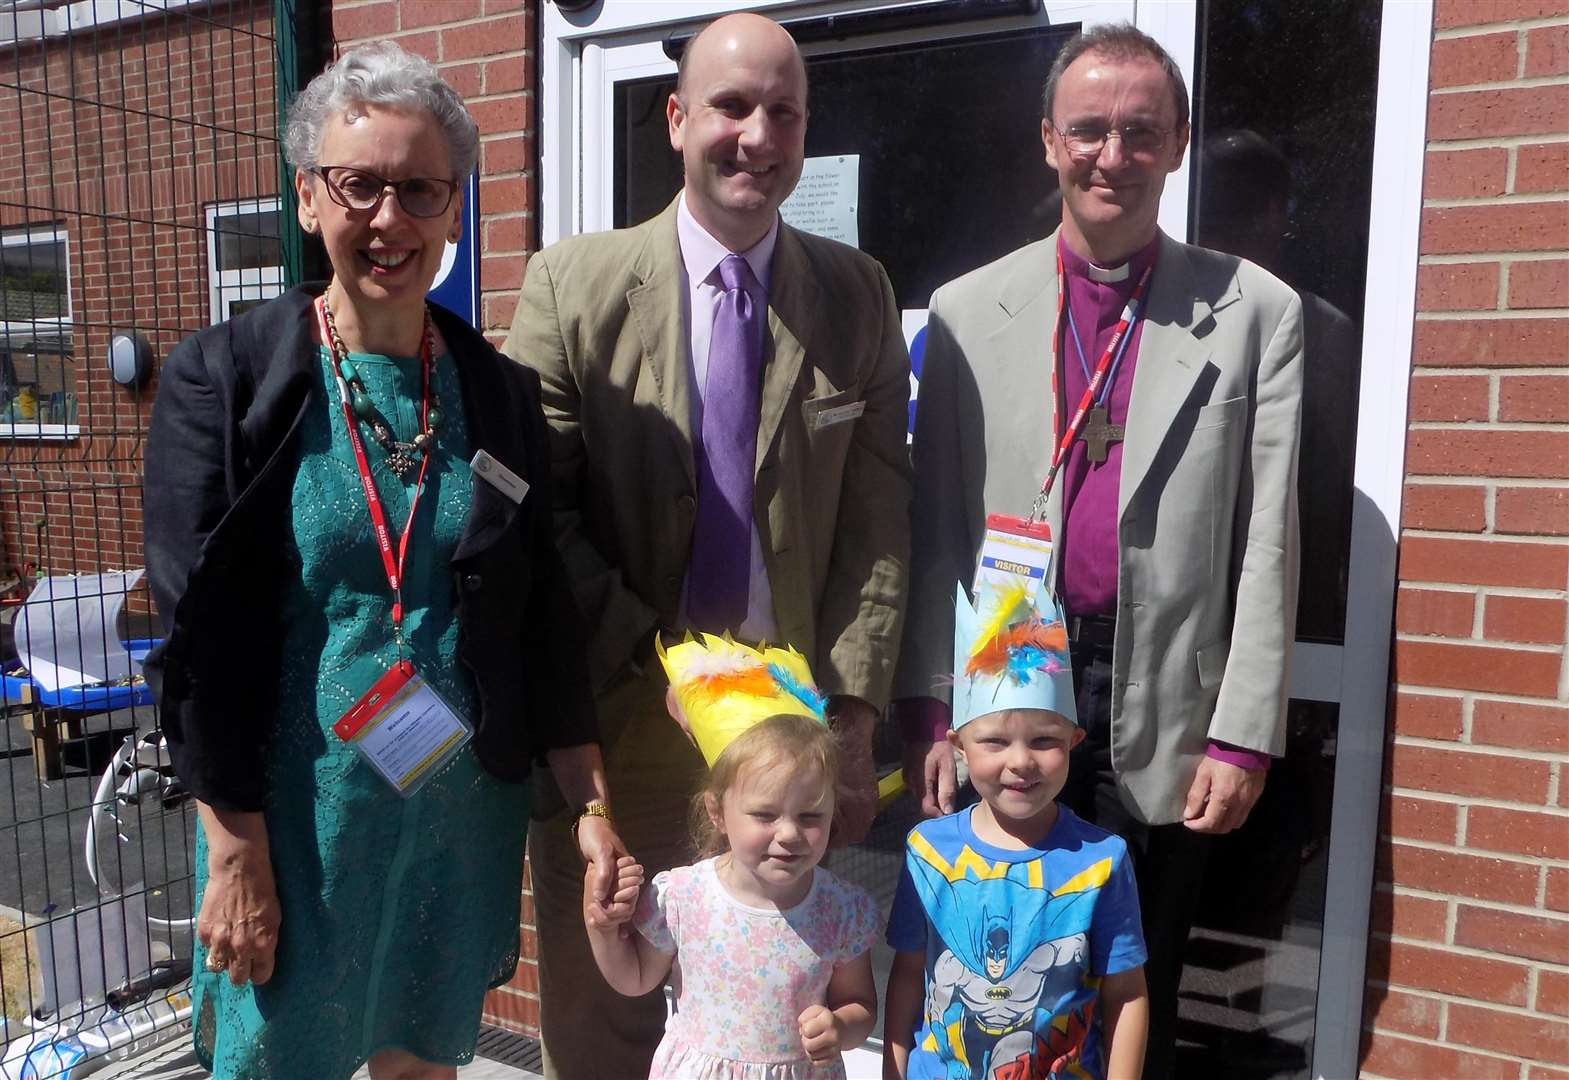 'Owls' nursery formally opened